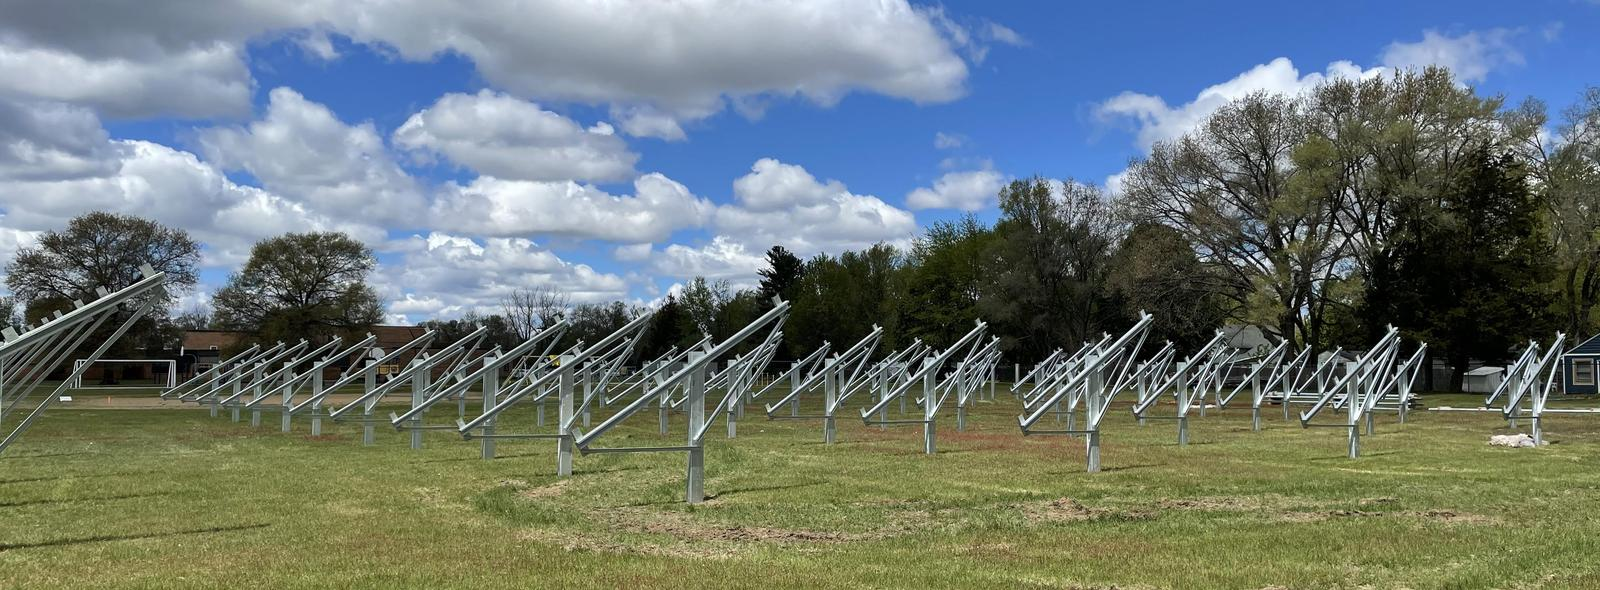 view of solar array field at a school